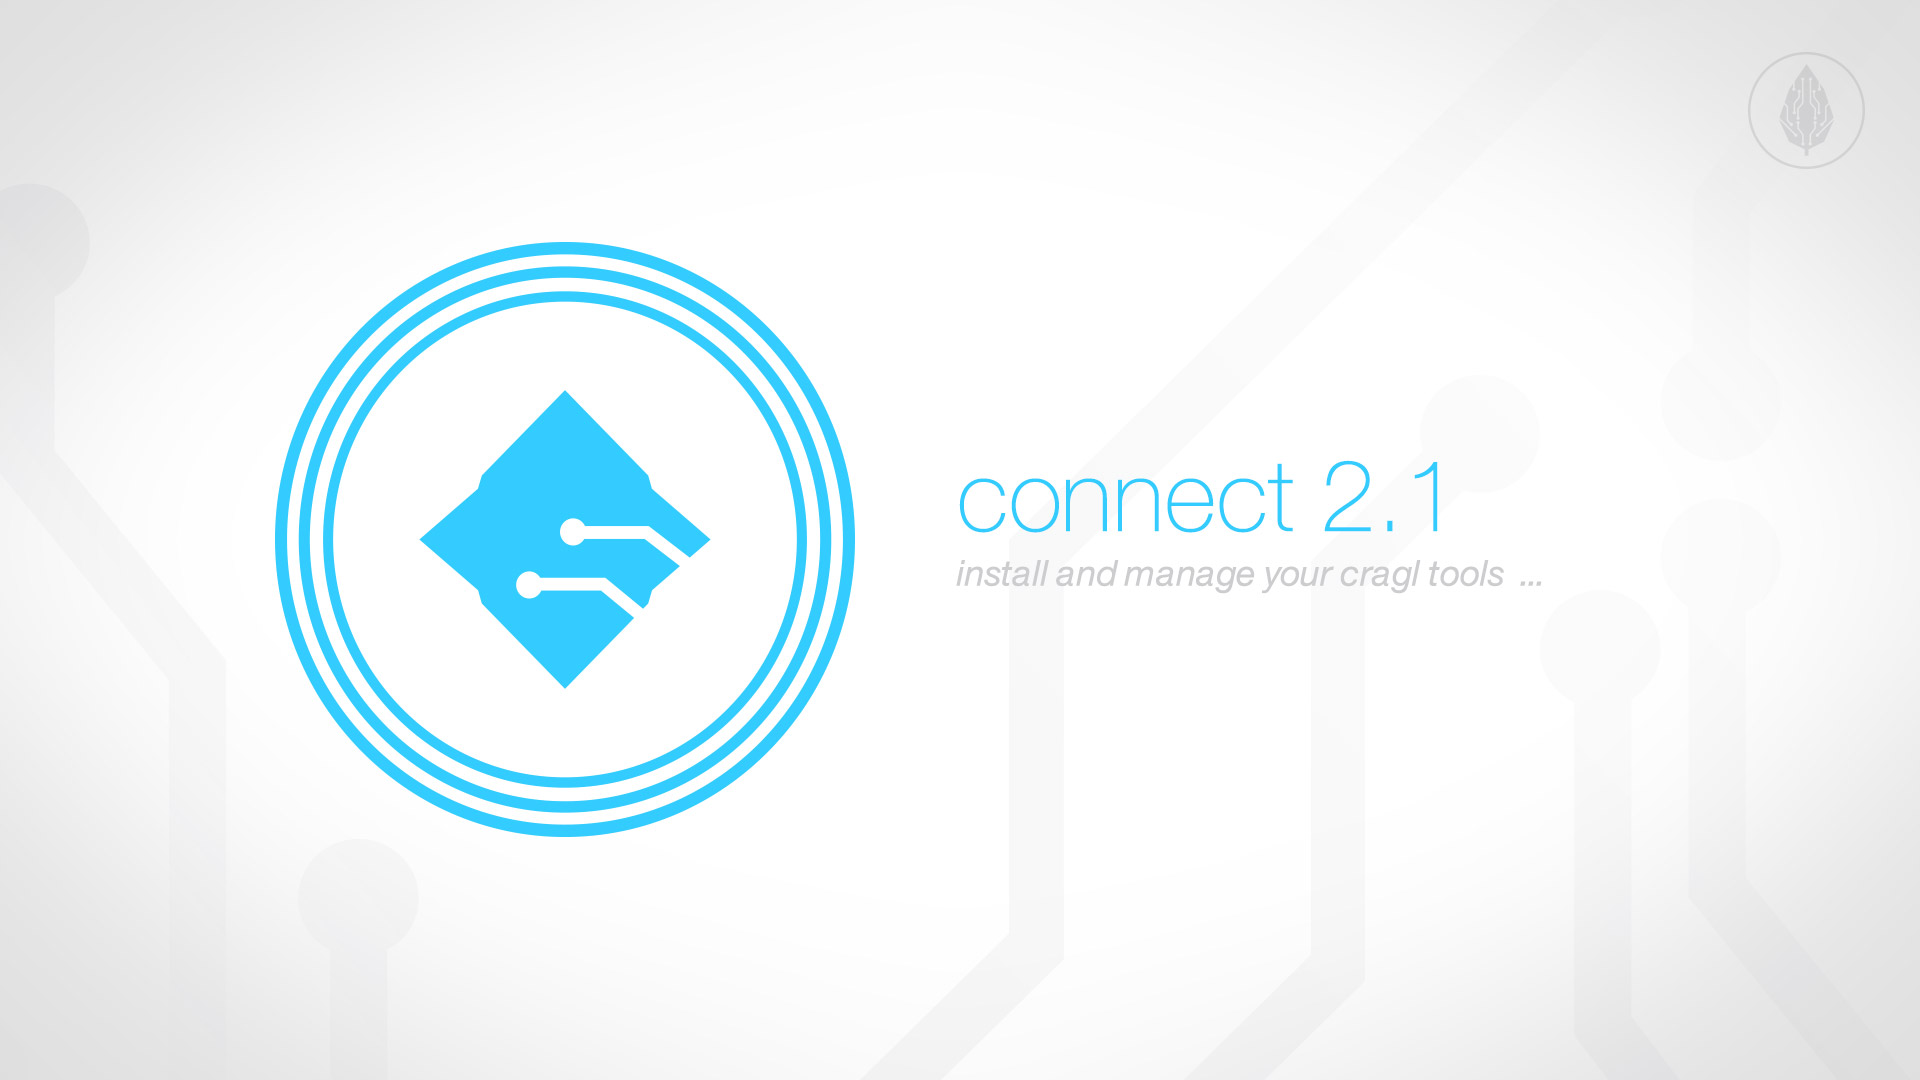 connect 2.1